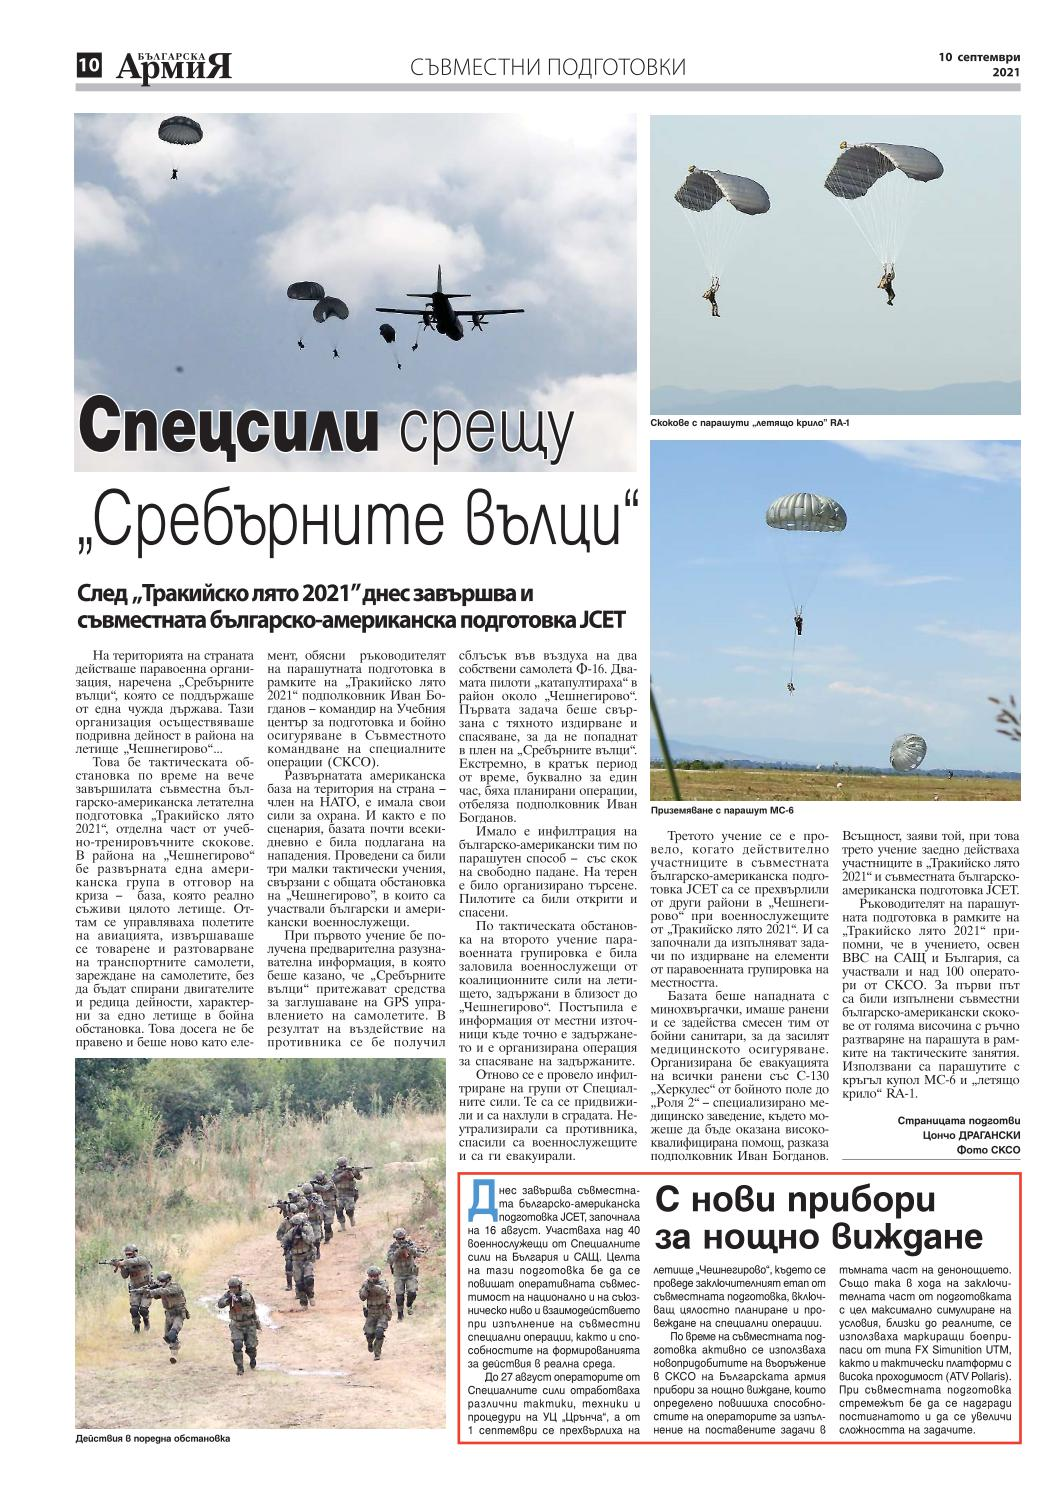 https://armymedia.bg/wp-content/uploads/2021/09/10.page1_-1.jpg